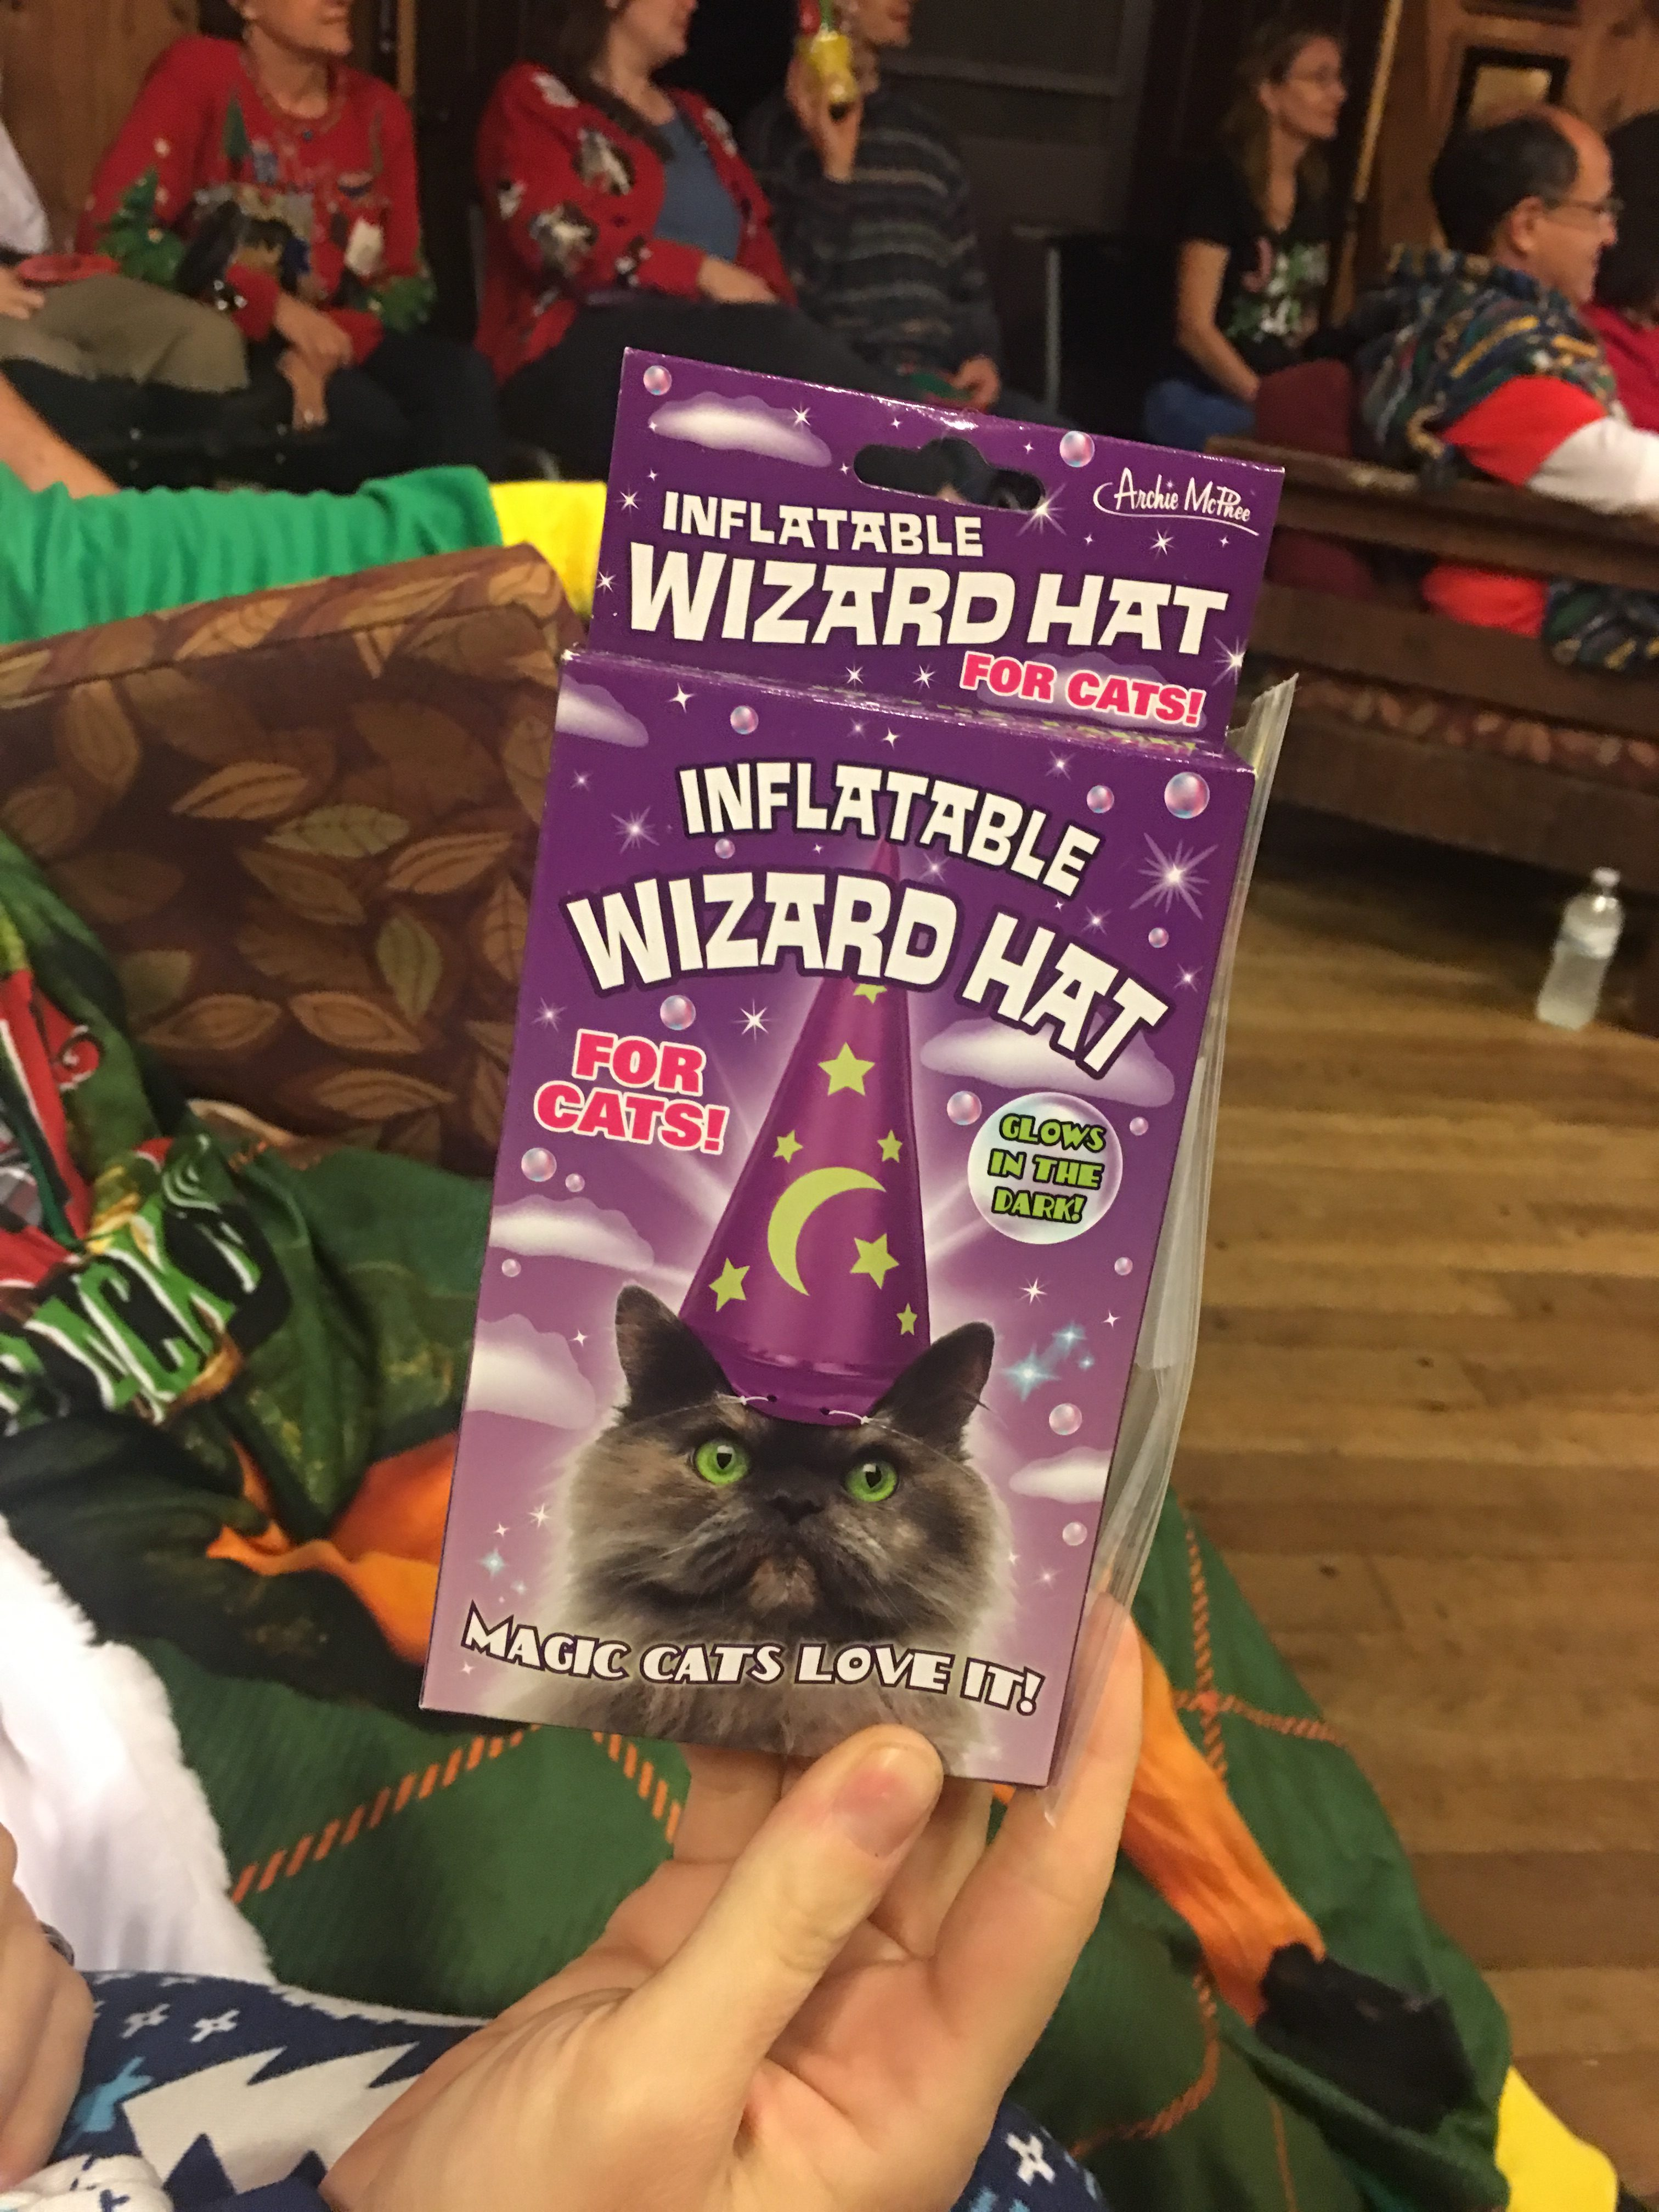 Best Funny White Elephant Gifts